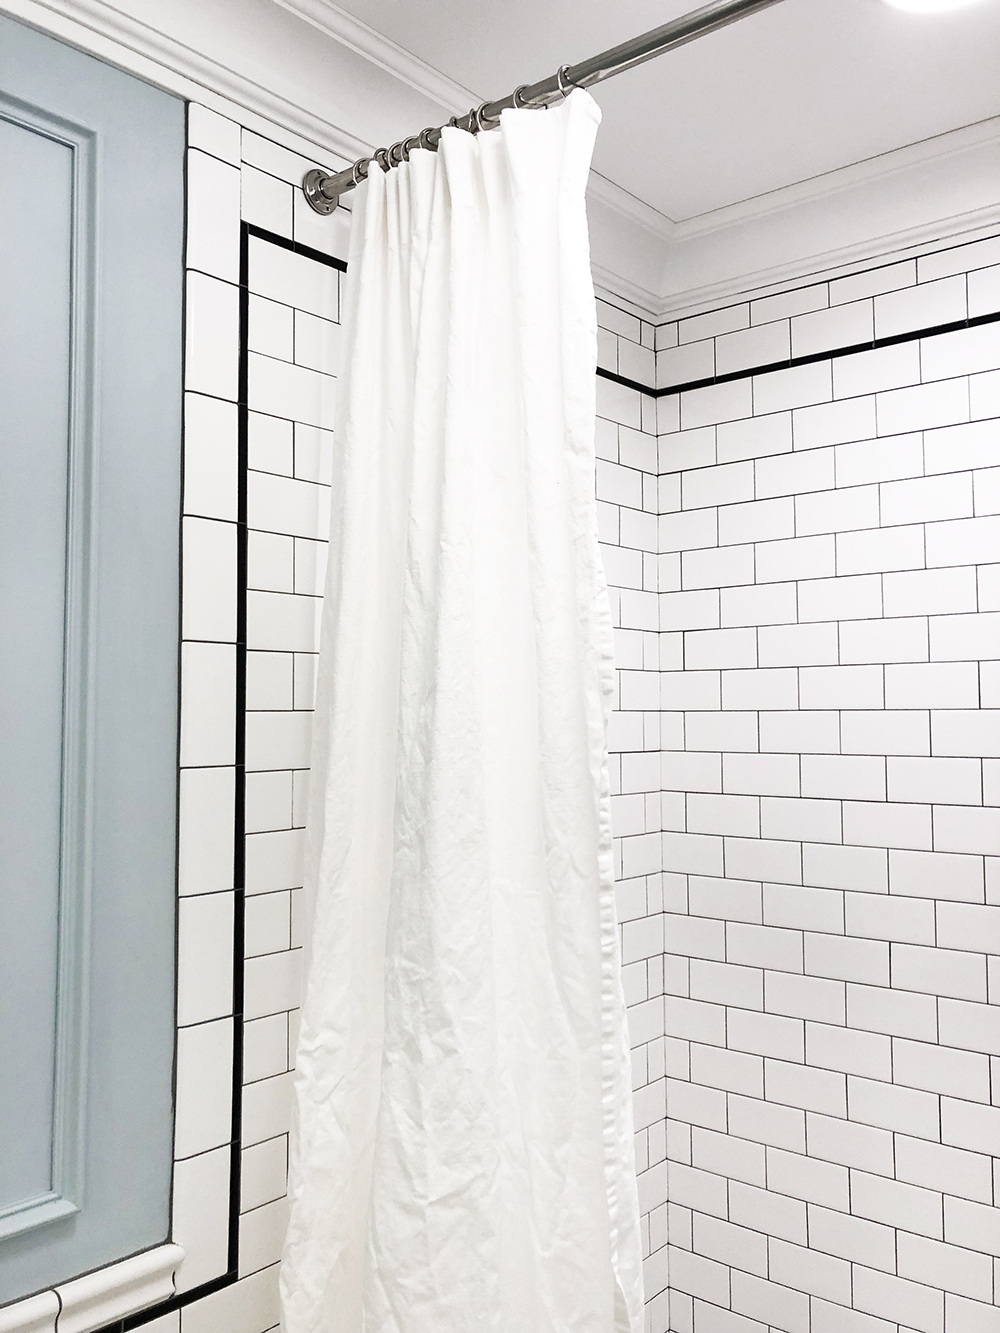 Long Shower Curtain Diy Extra Long Shower Curtain Using Ikea Curtains Room For Tuesday